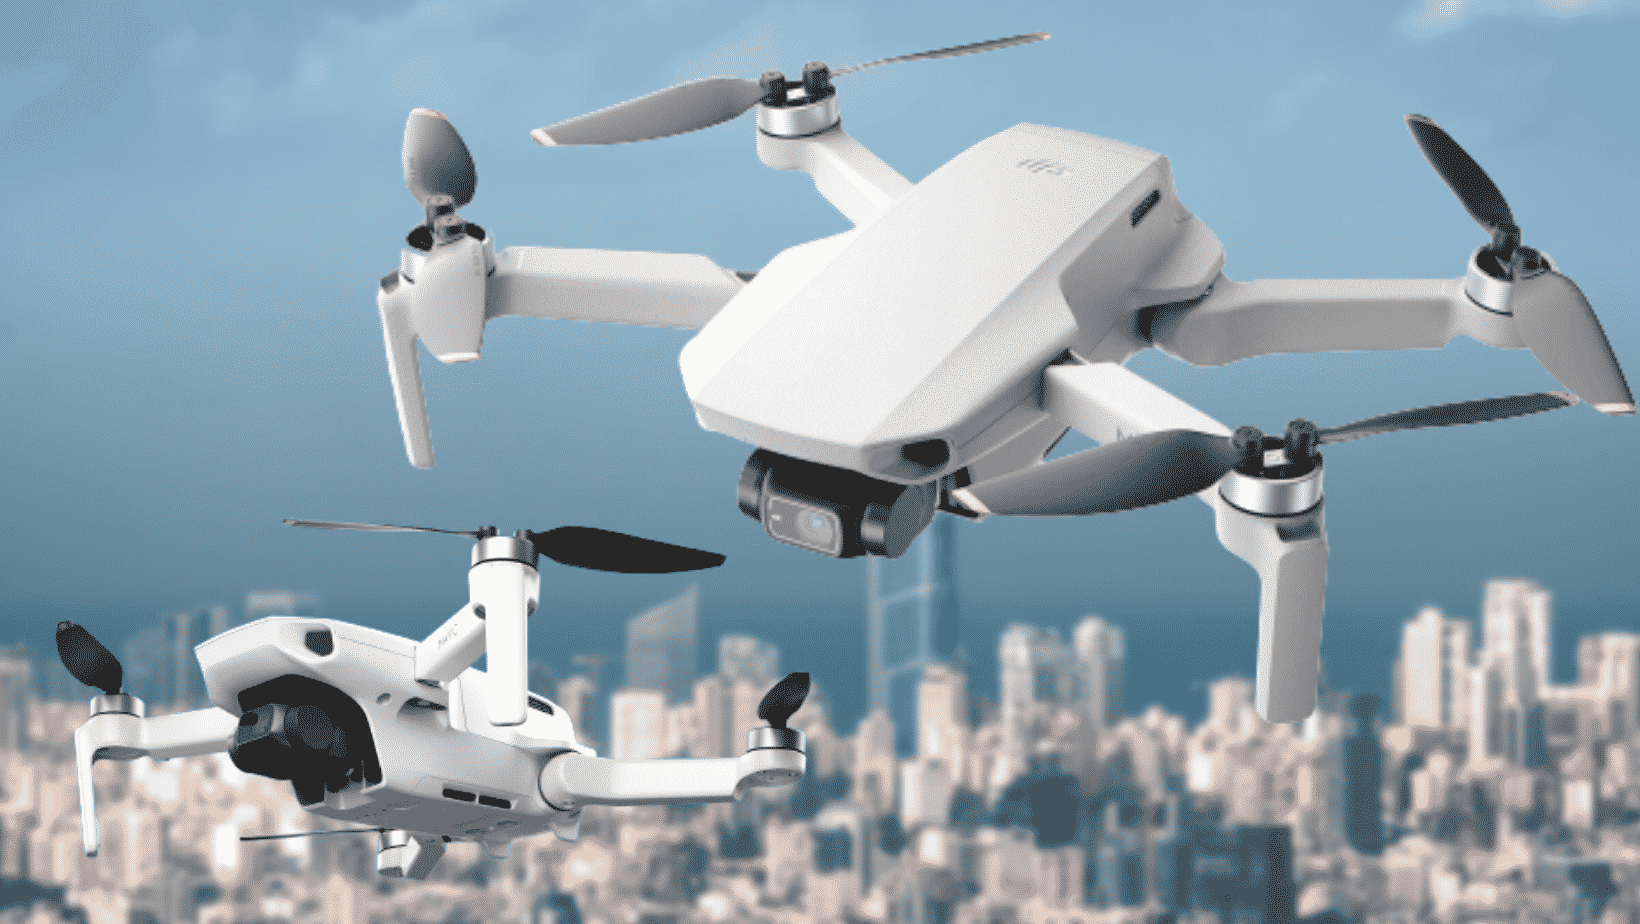 Top 5 Best Affordable Budget Drones 2021